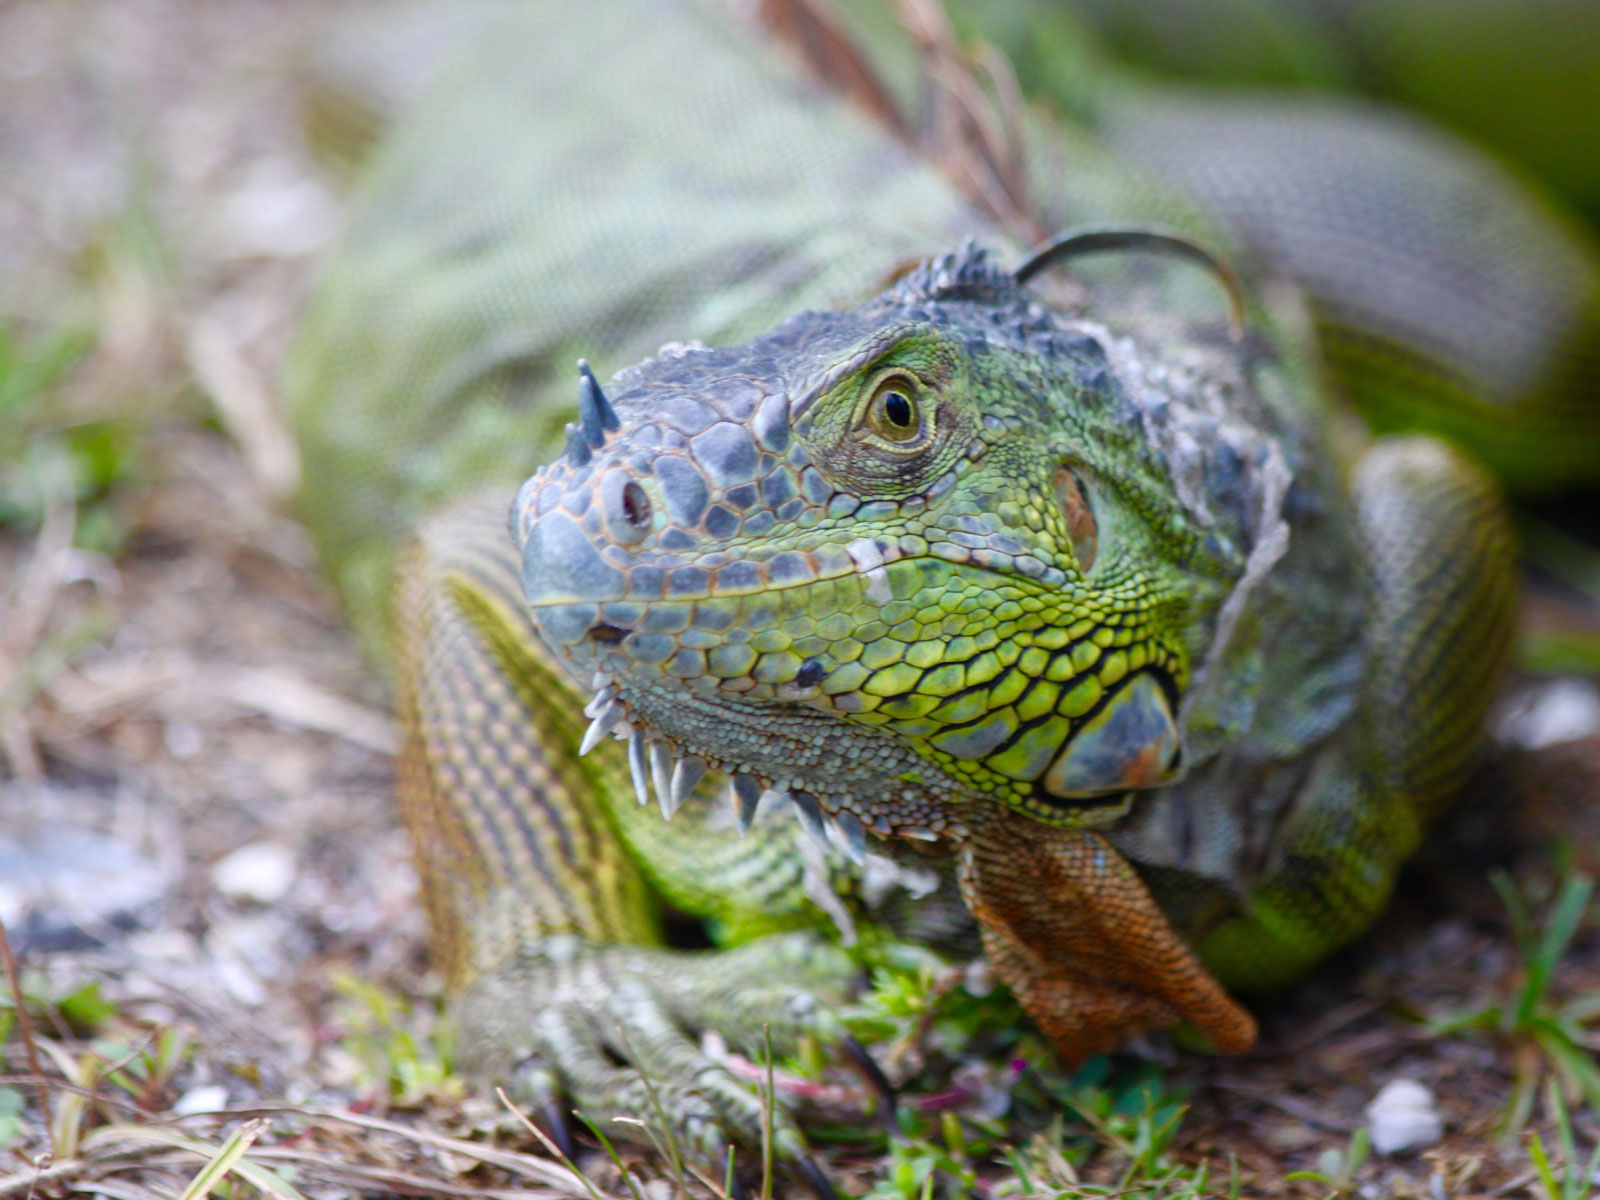 Close up headshot of large green iguana